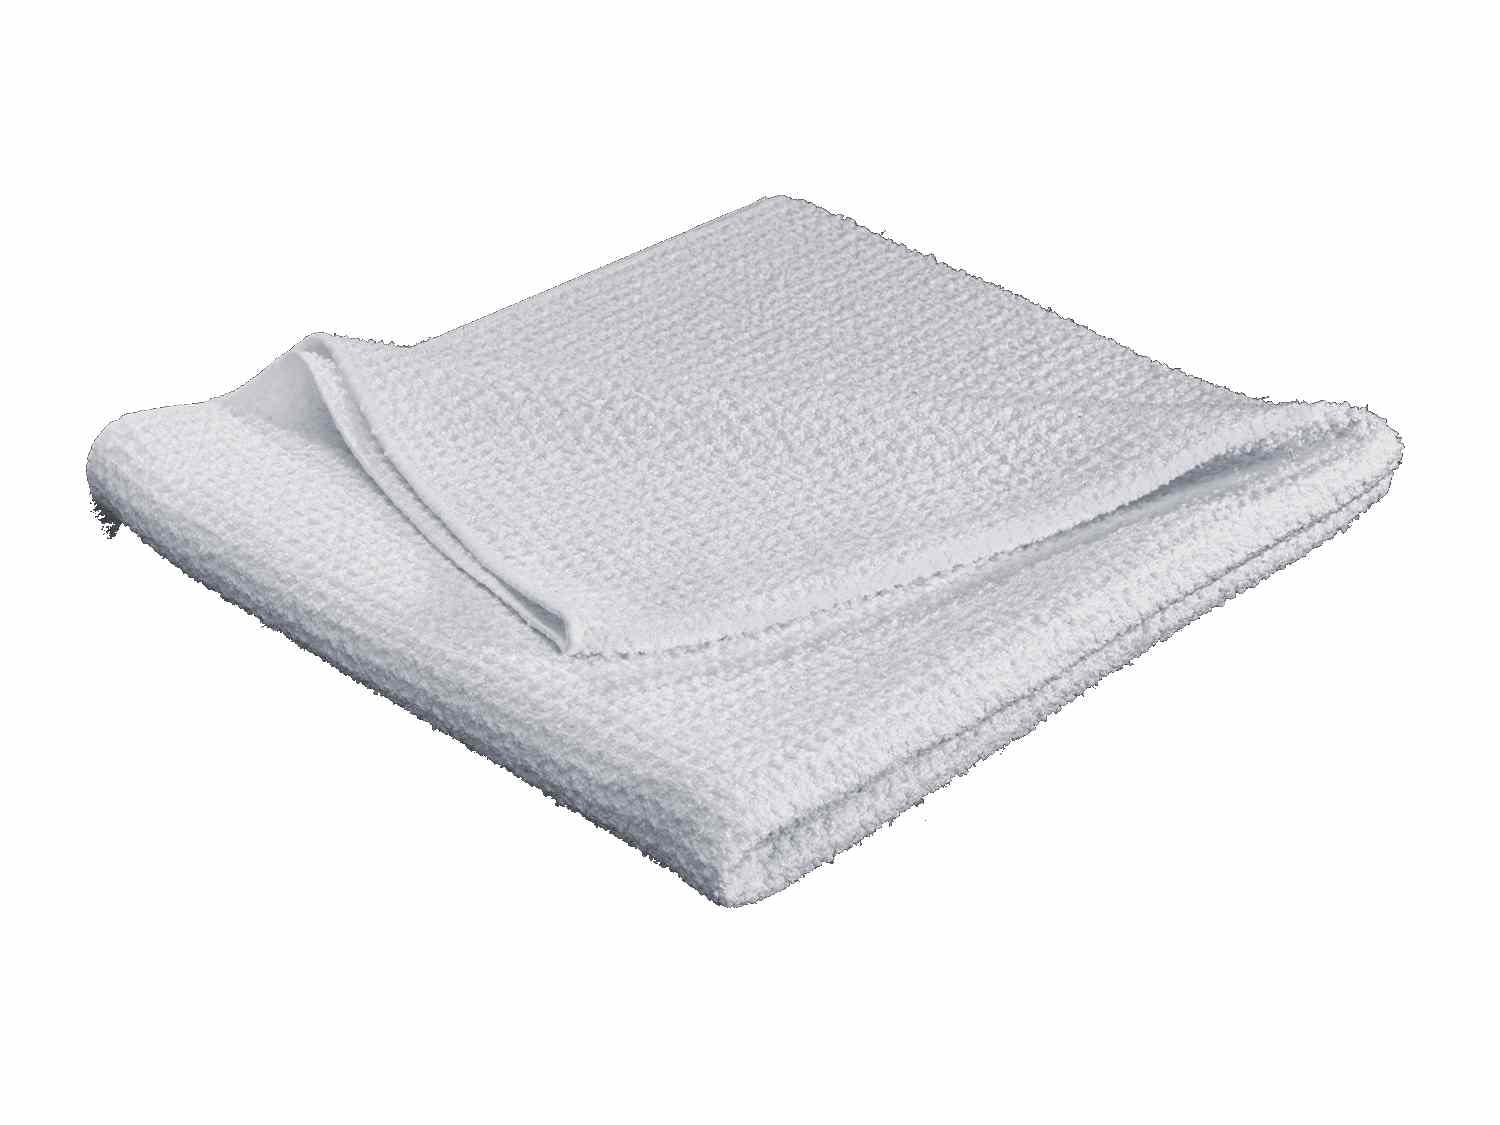 WeatherTech 8AWCC1 TechCare Microfiber Cleaning Cloth